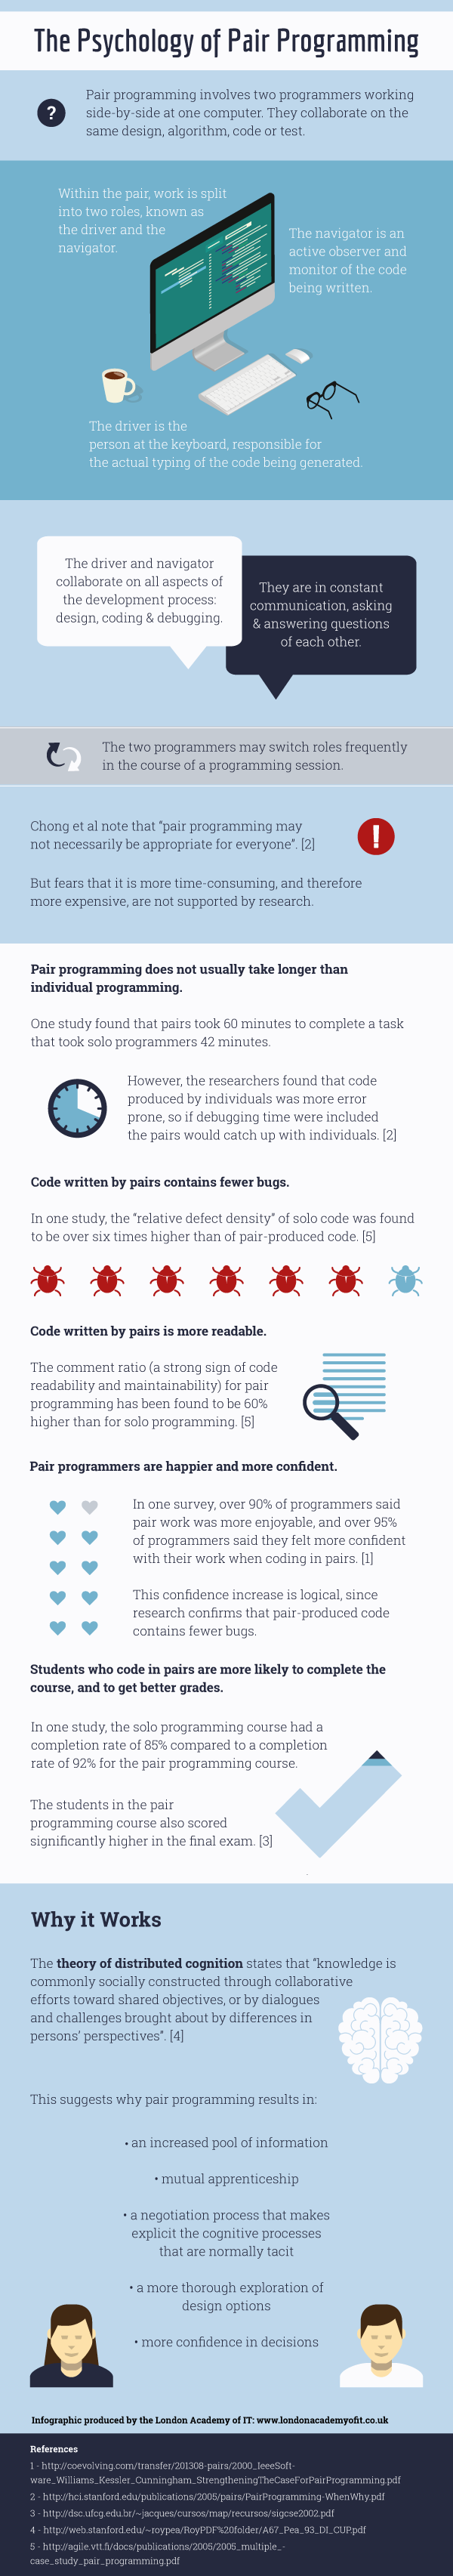 This infographic explains why pair programming can improve performance, confidence and happiness in programmers.